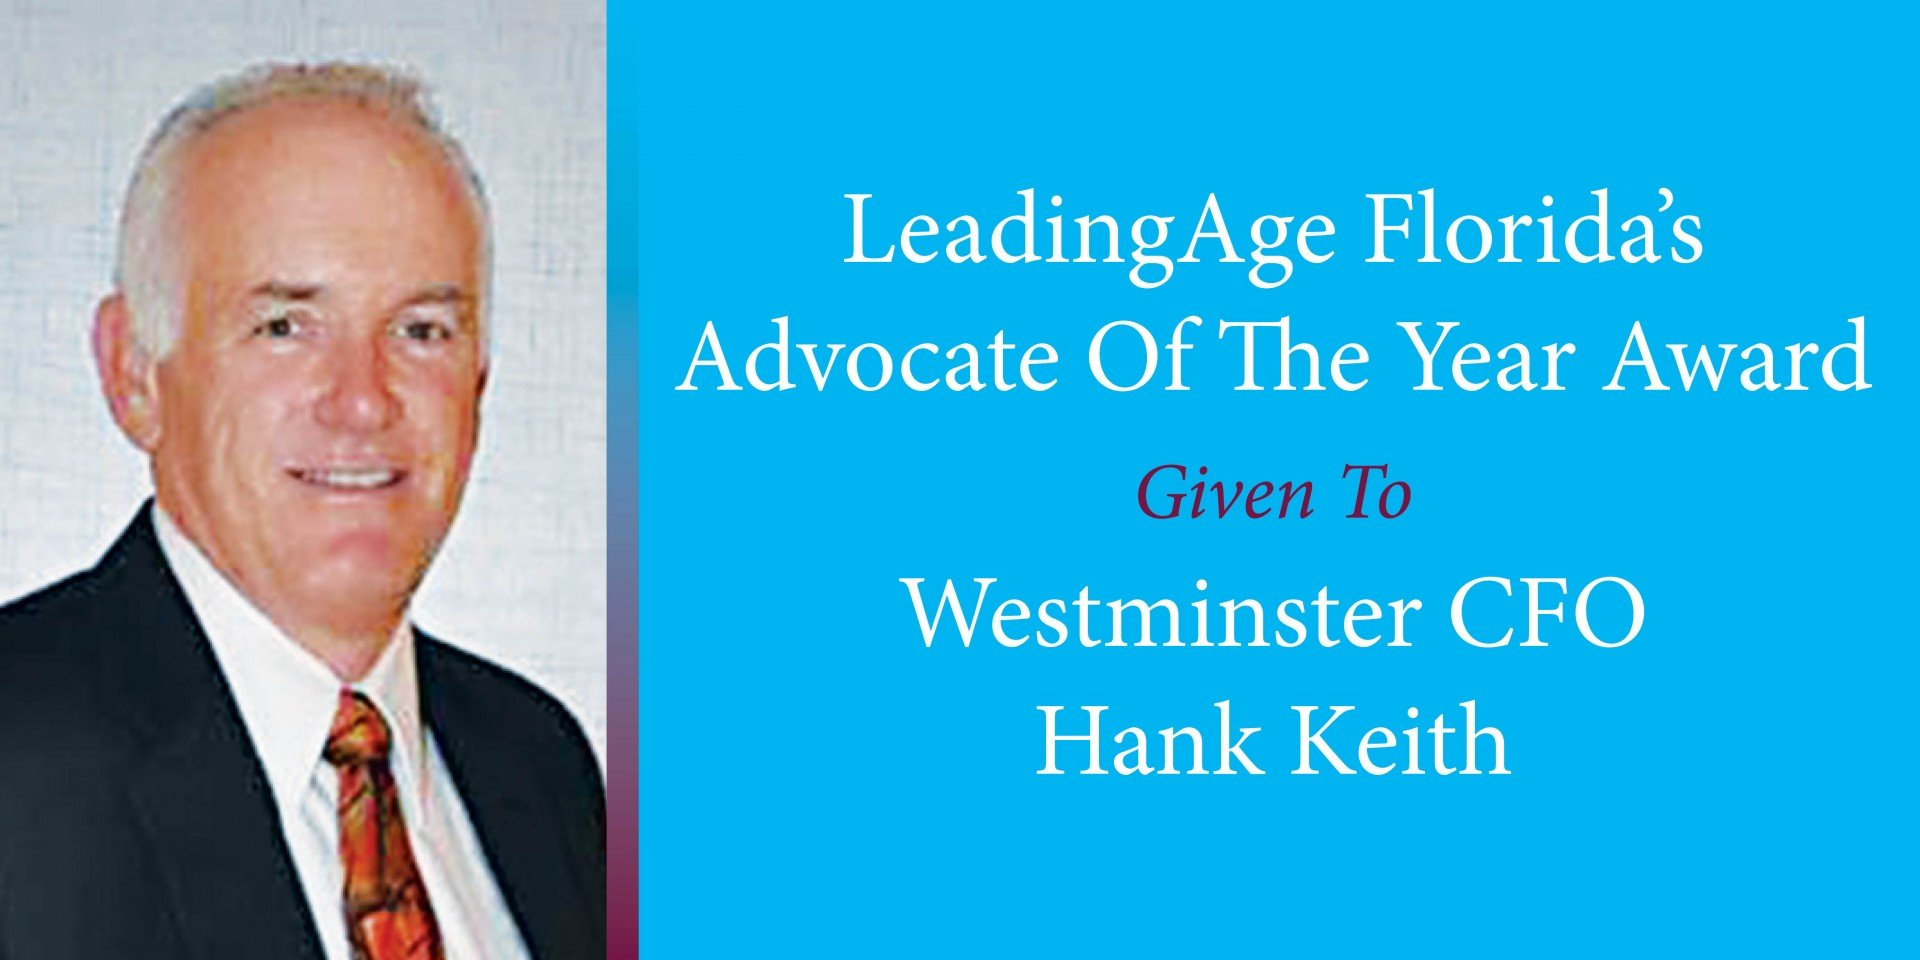 LeadingAge Florida's Advocate Of The Year Award Given To Westminster CFO Hank Keith